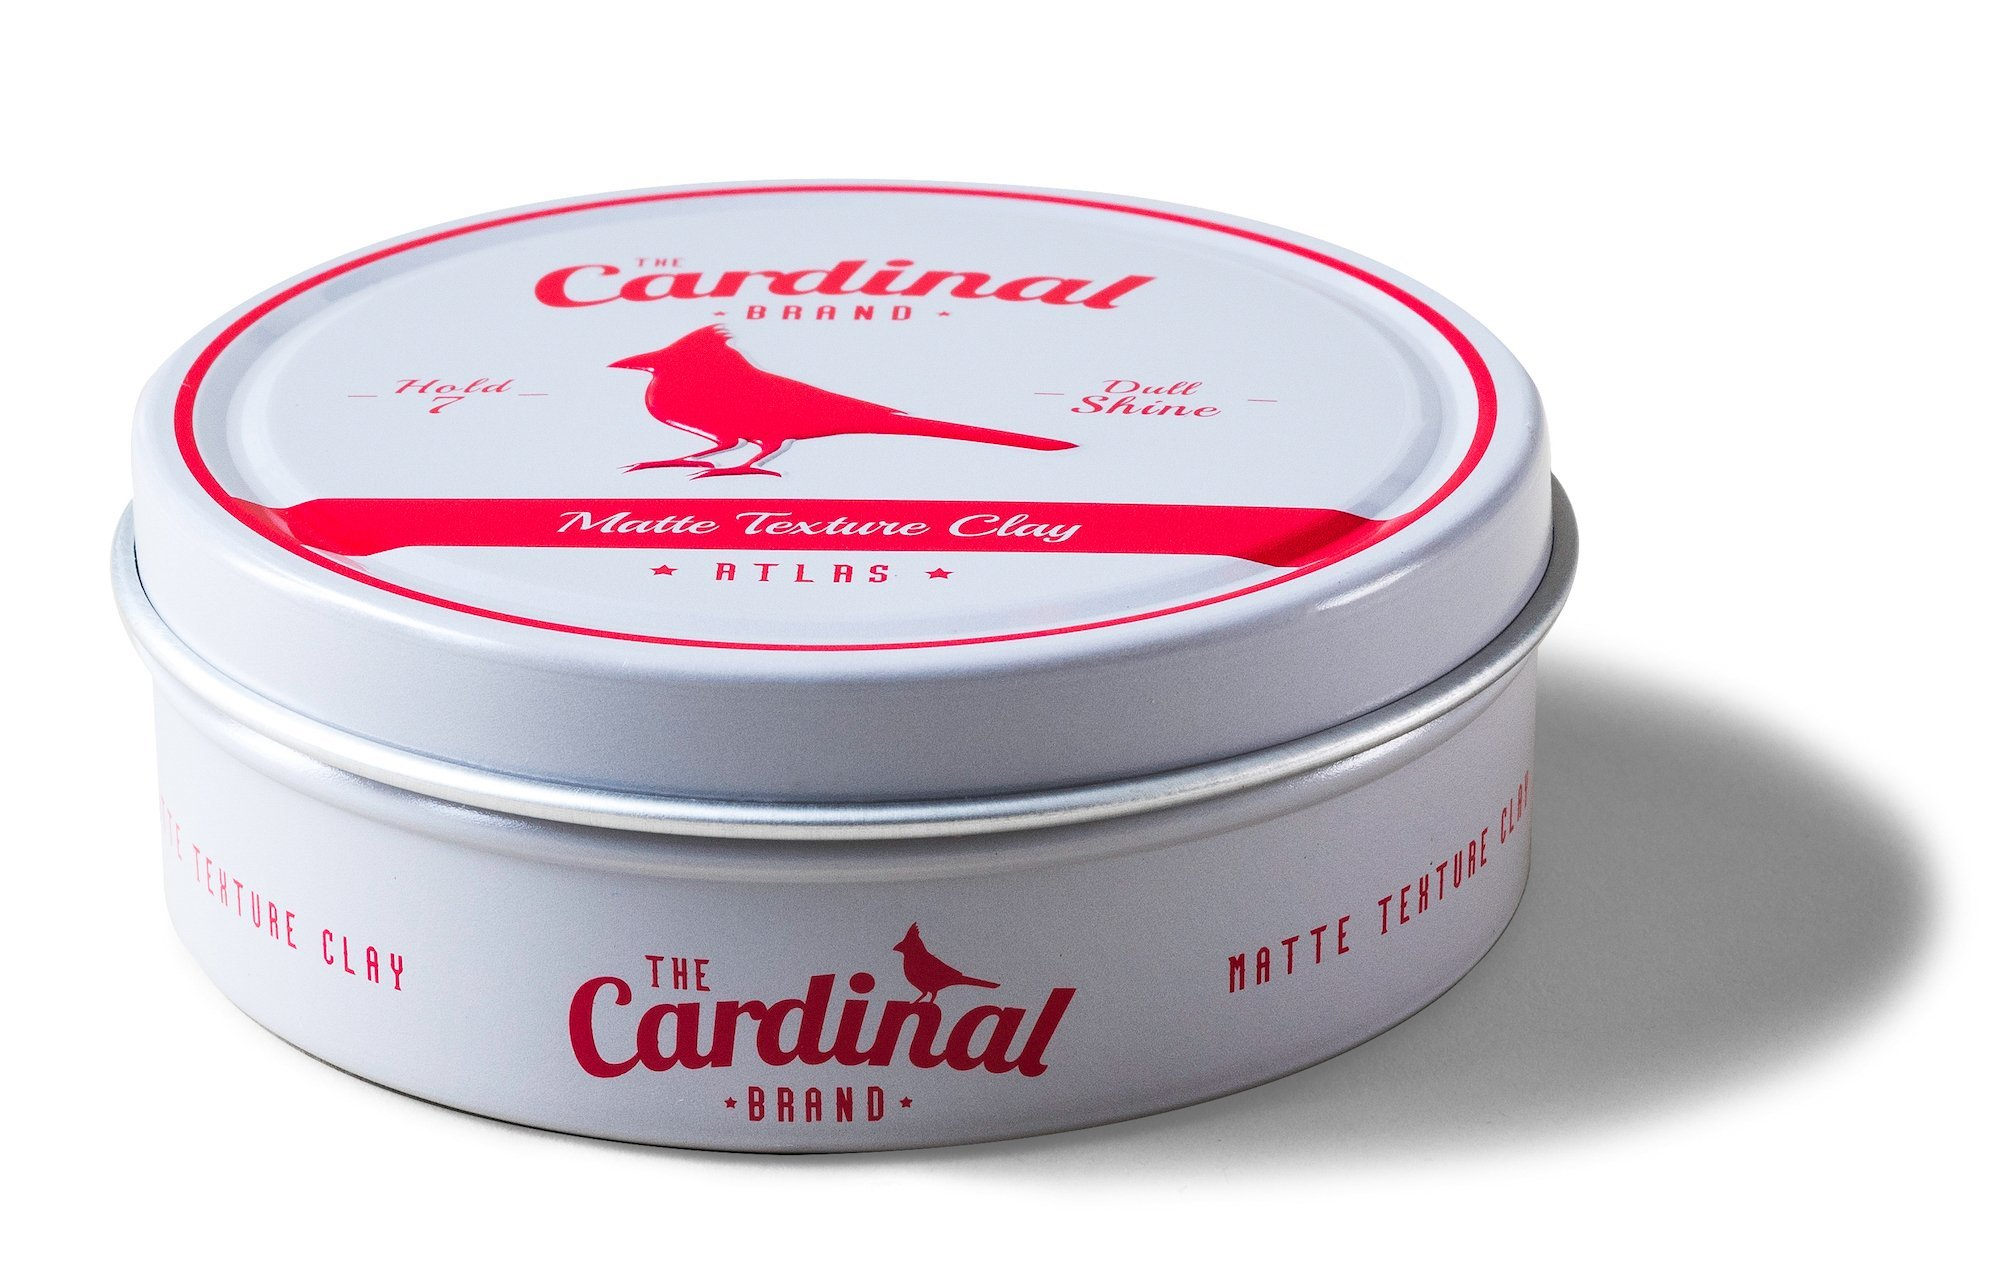 The Cardinal Brand Atlas Matte Texture Clay 3.4 Ounce is an Ultra Lightweight, Matte Hair Clay, Medium to Firm Hold, Thickening, Volume Building, Hair Styling and Grooming Product for Men and Women by The Cardinal Brand (Image #3)